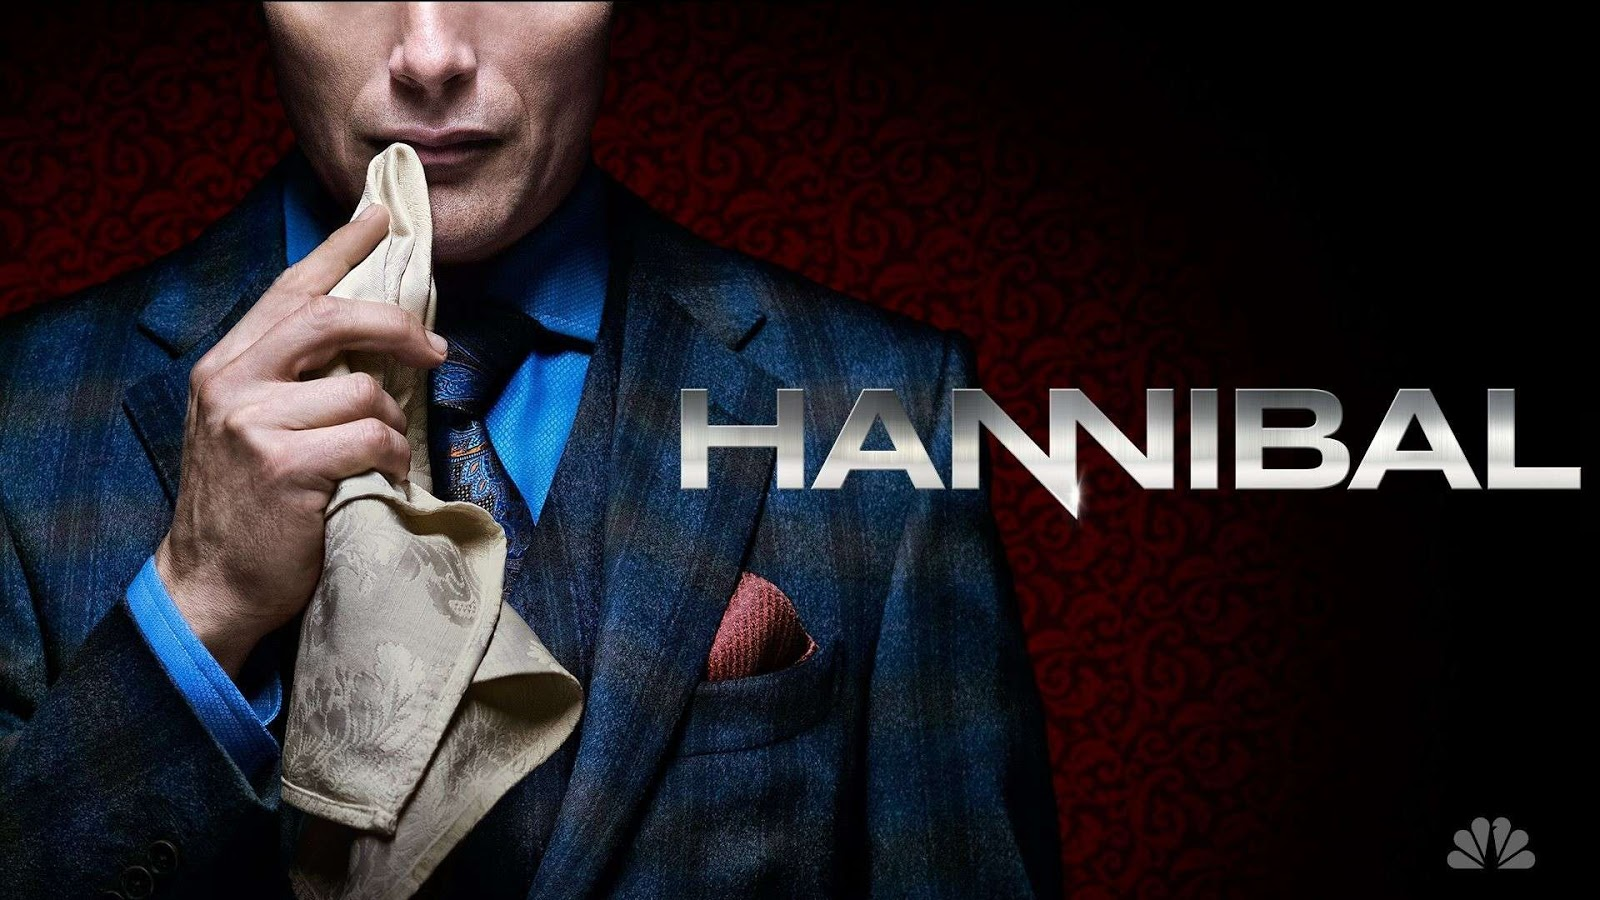 Hannibal Season 2 Trailer